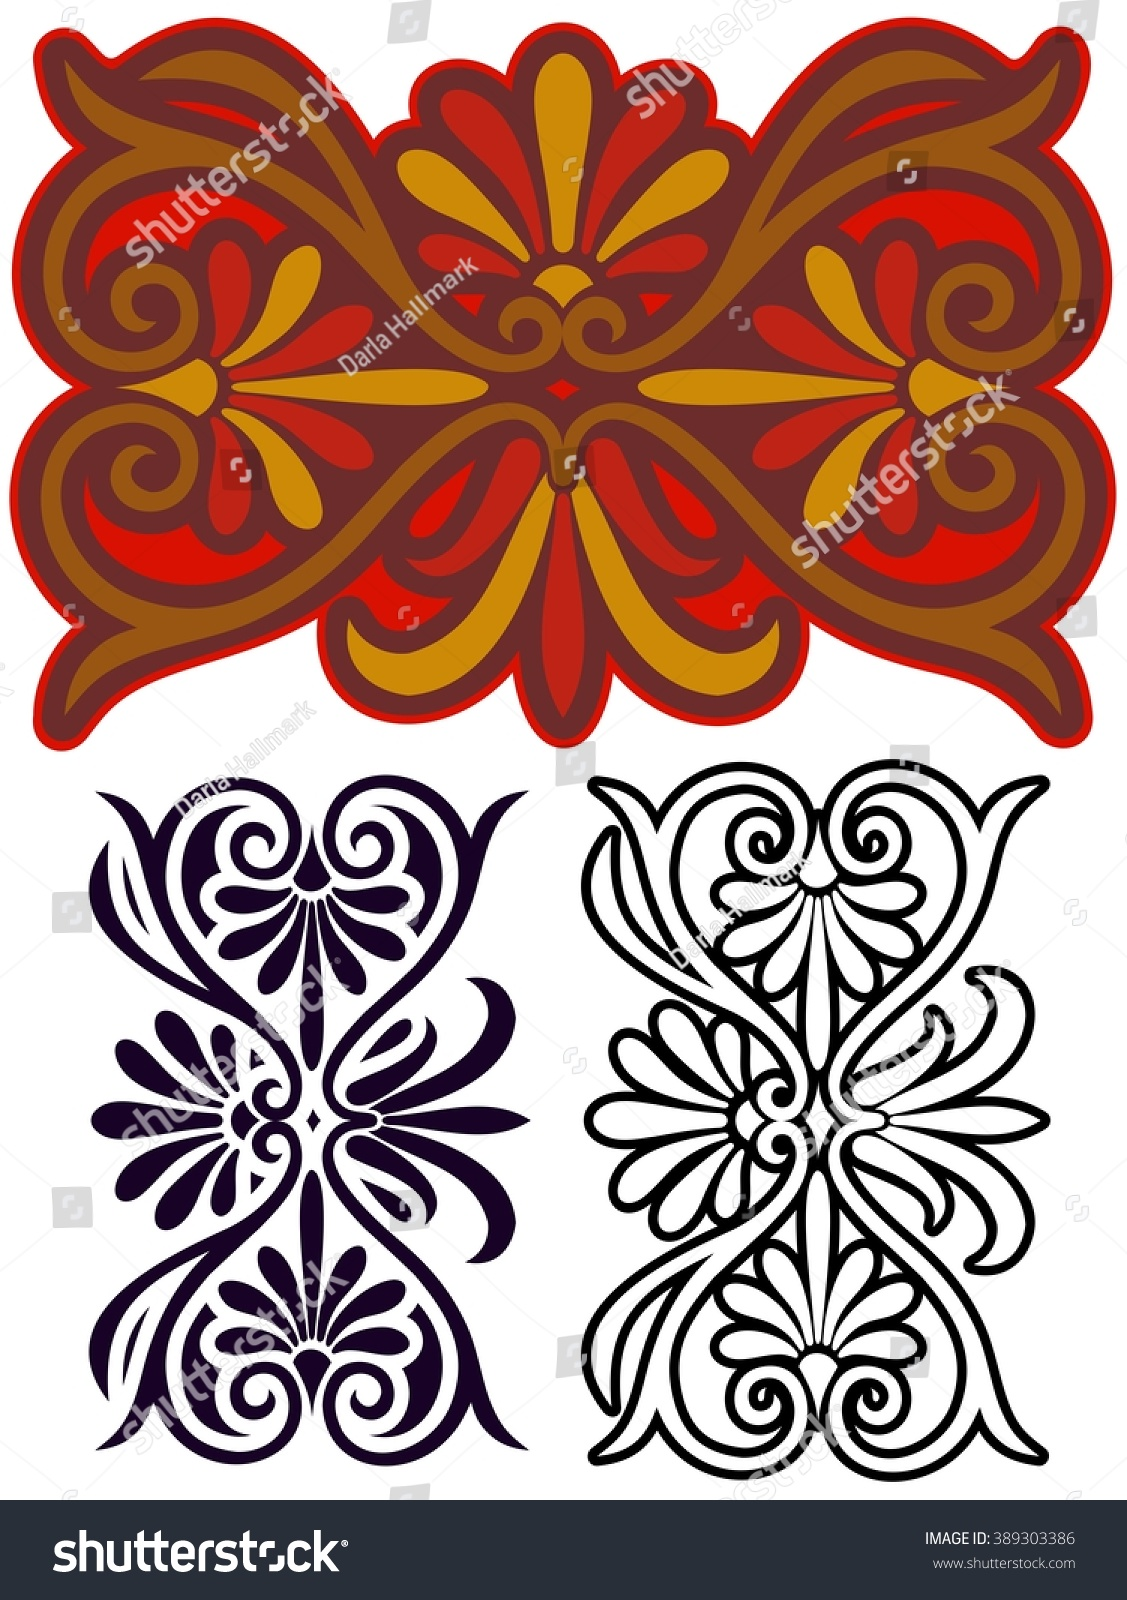 Decorative Art Nouveau Style Motif Inspired By Ancient Greek Ornaments